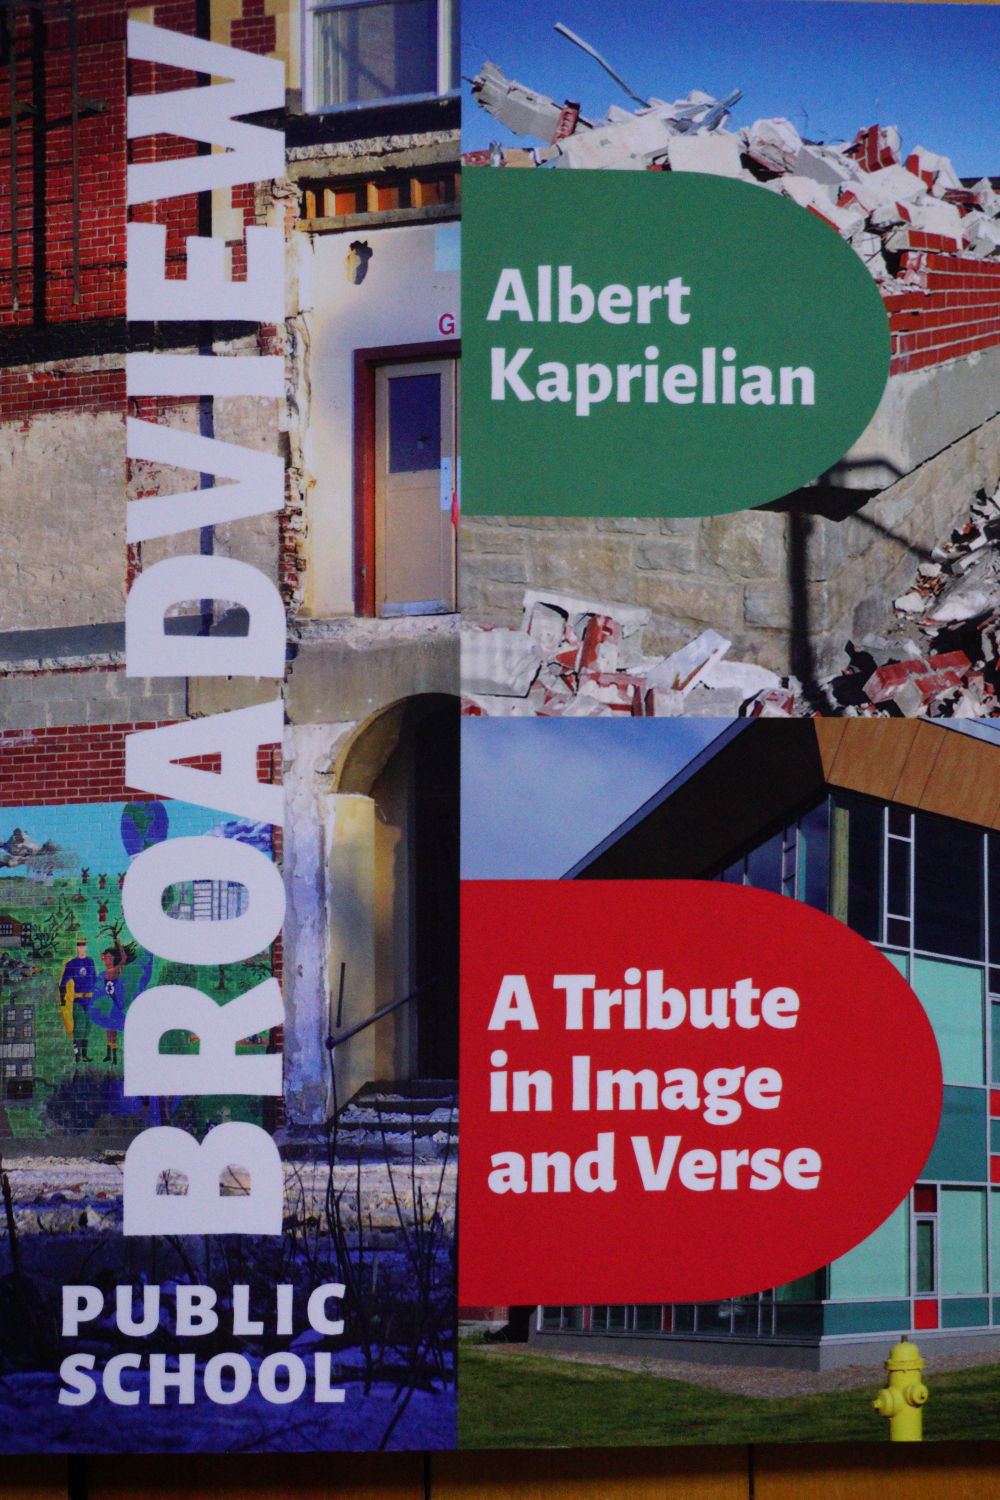 Broadview Public School: A Tribute in Image and verse